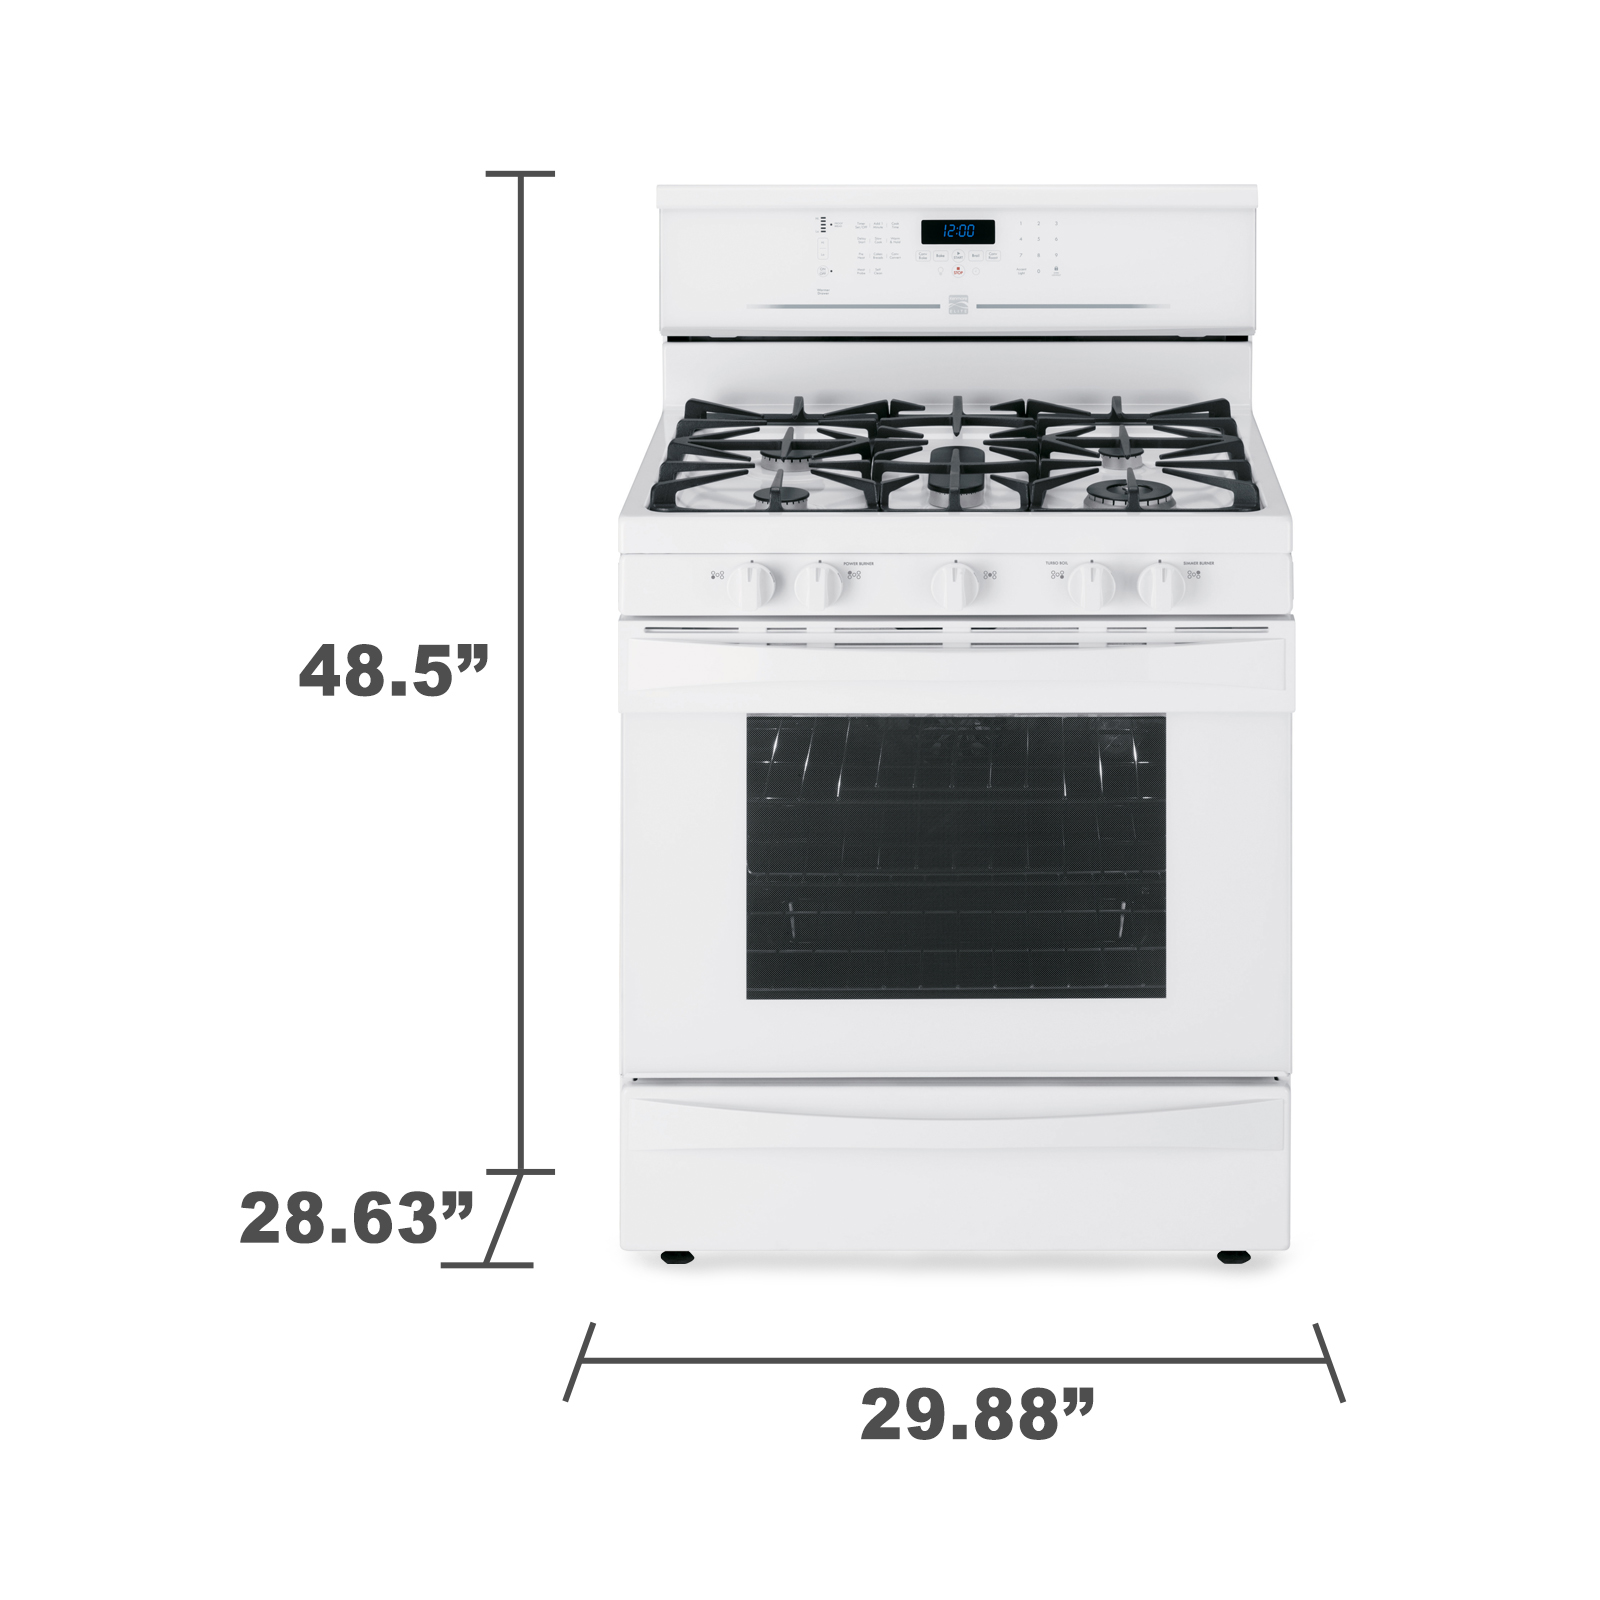 Kenmore Elite 5.6 cu. ft. Gas Range w/ True Convection - White